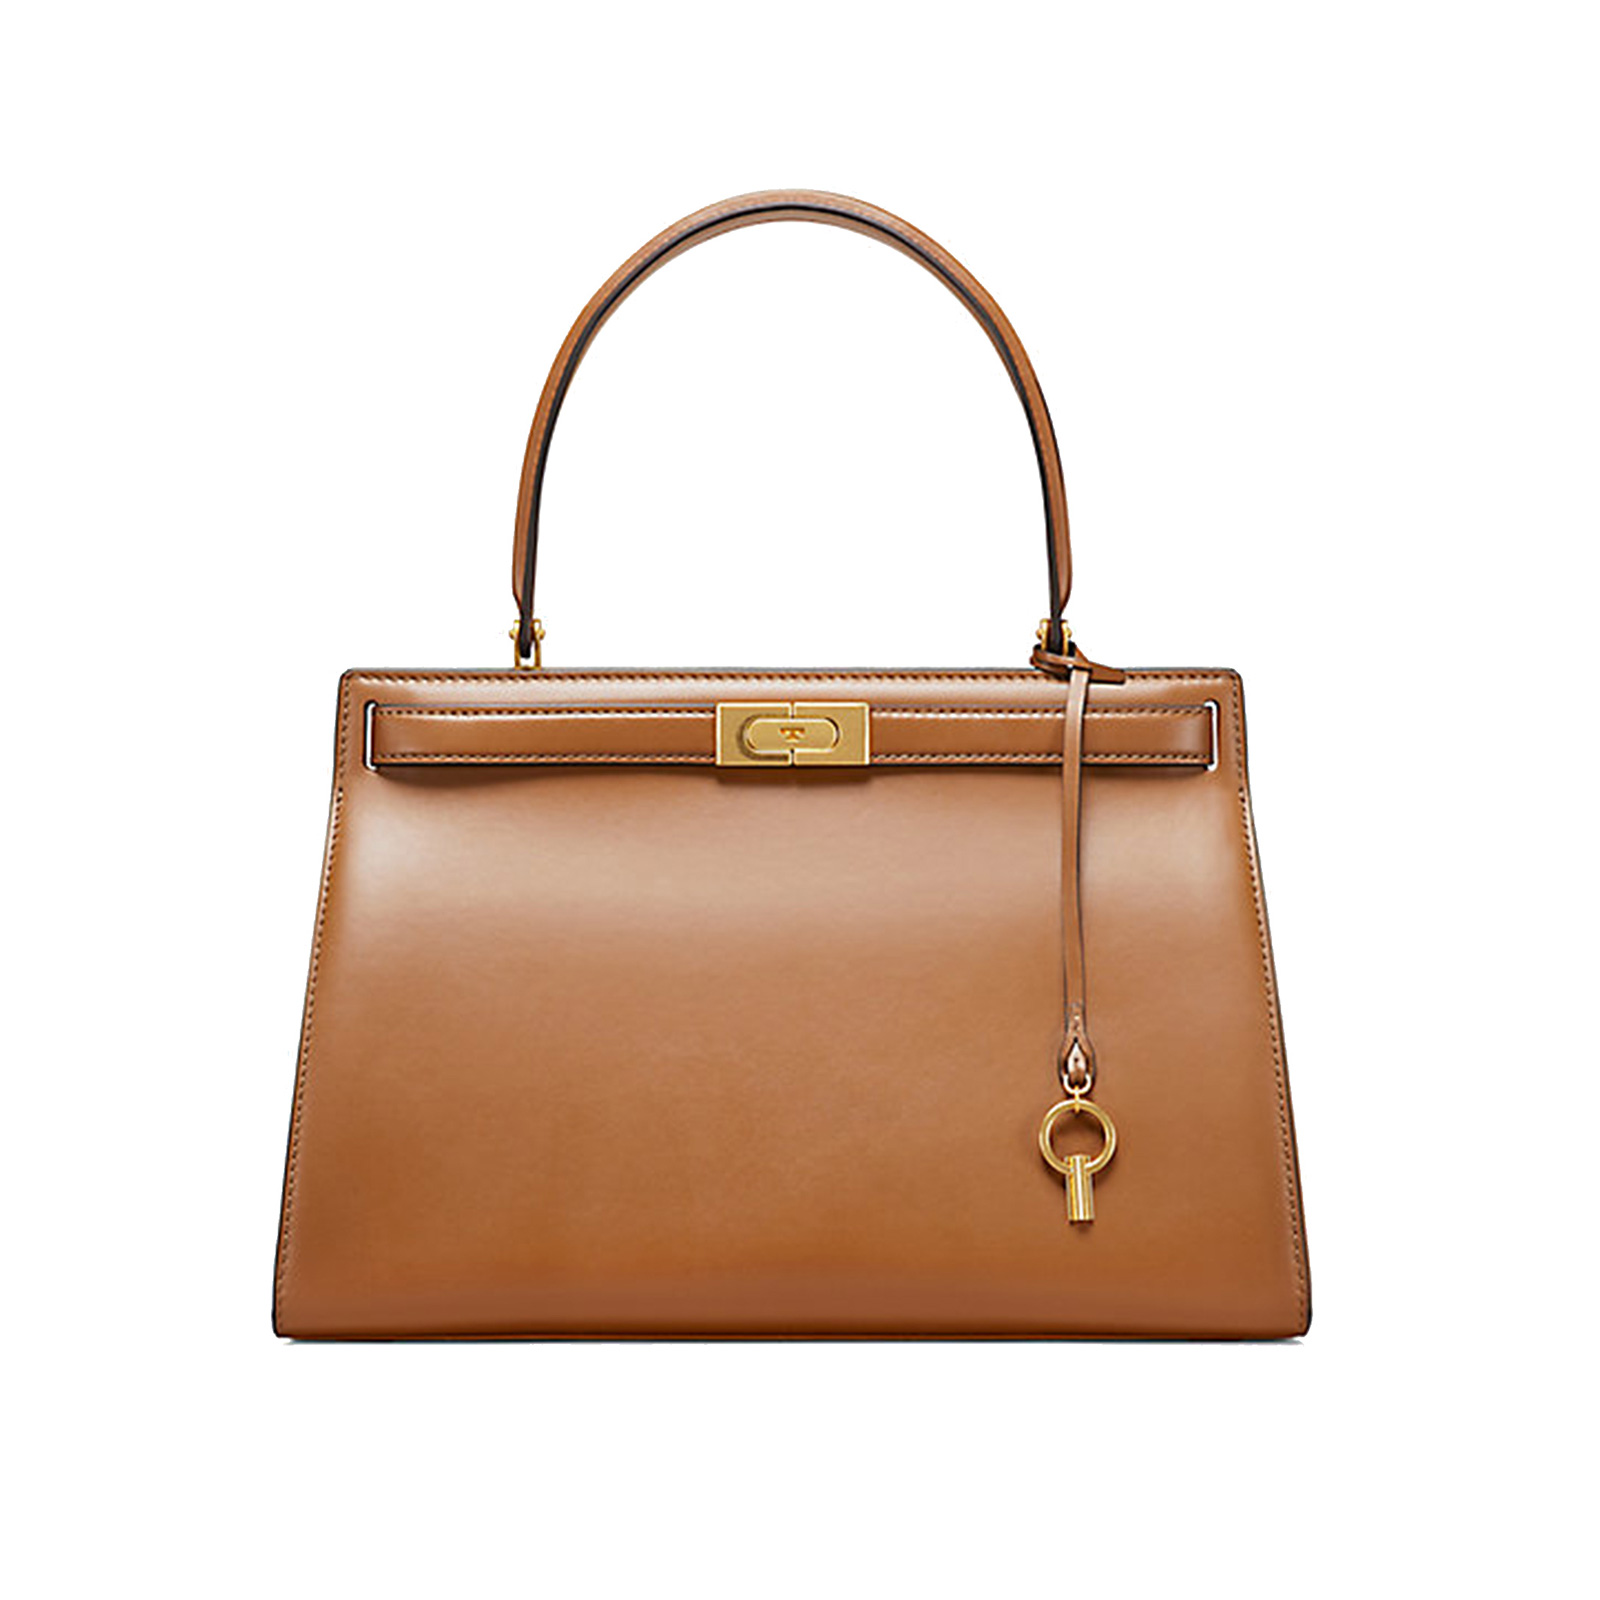 Tory-Burch-Bag---Square